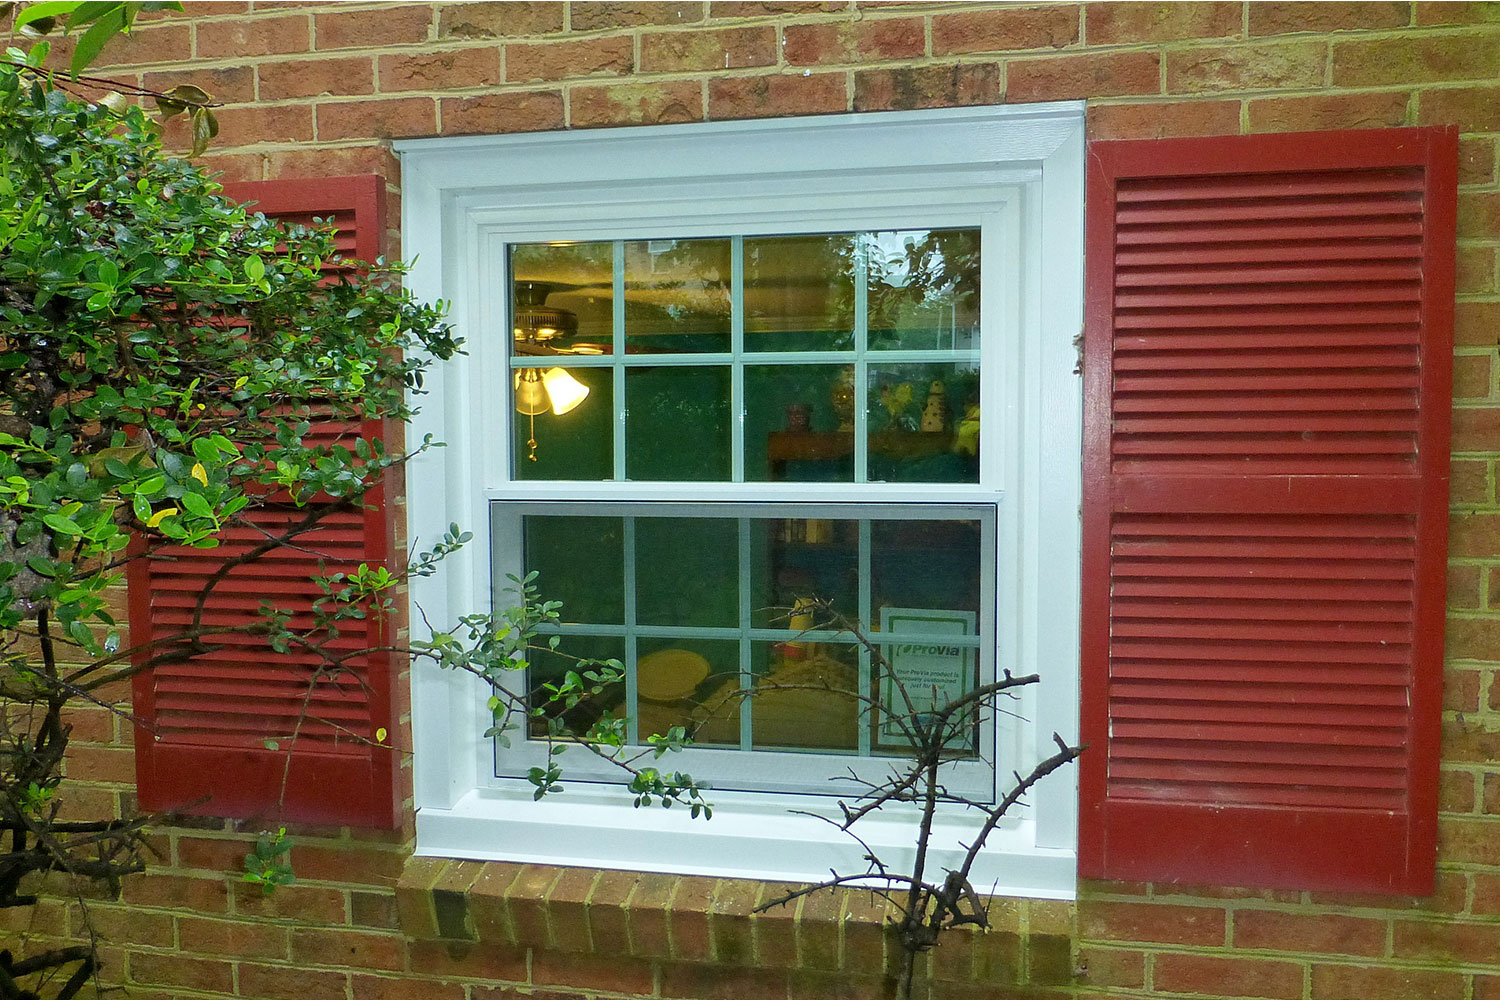 new window in morganton nc home